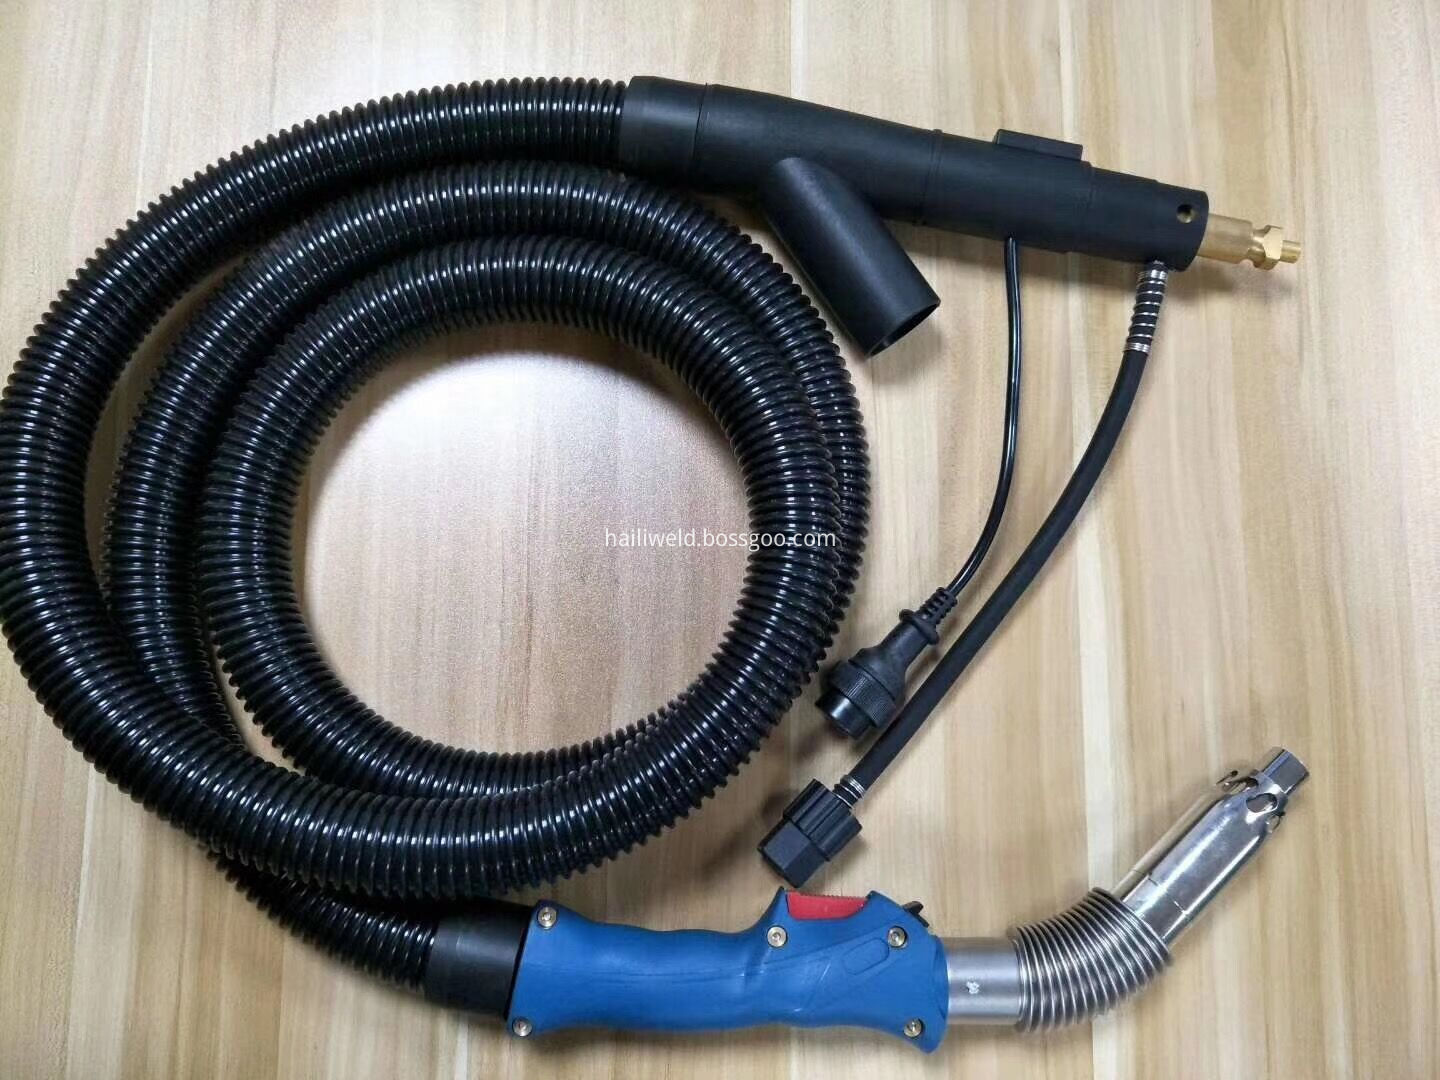 binzel fume extraction torch